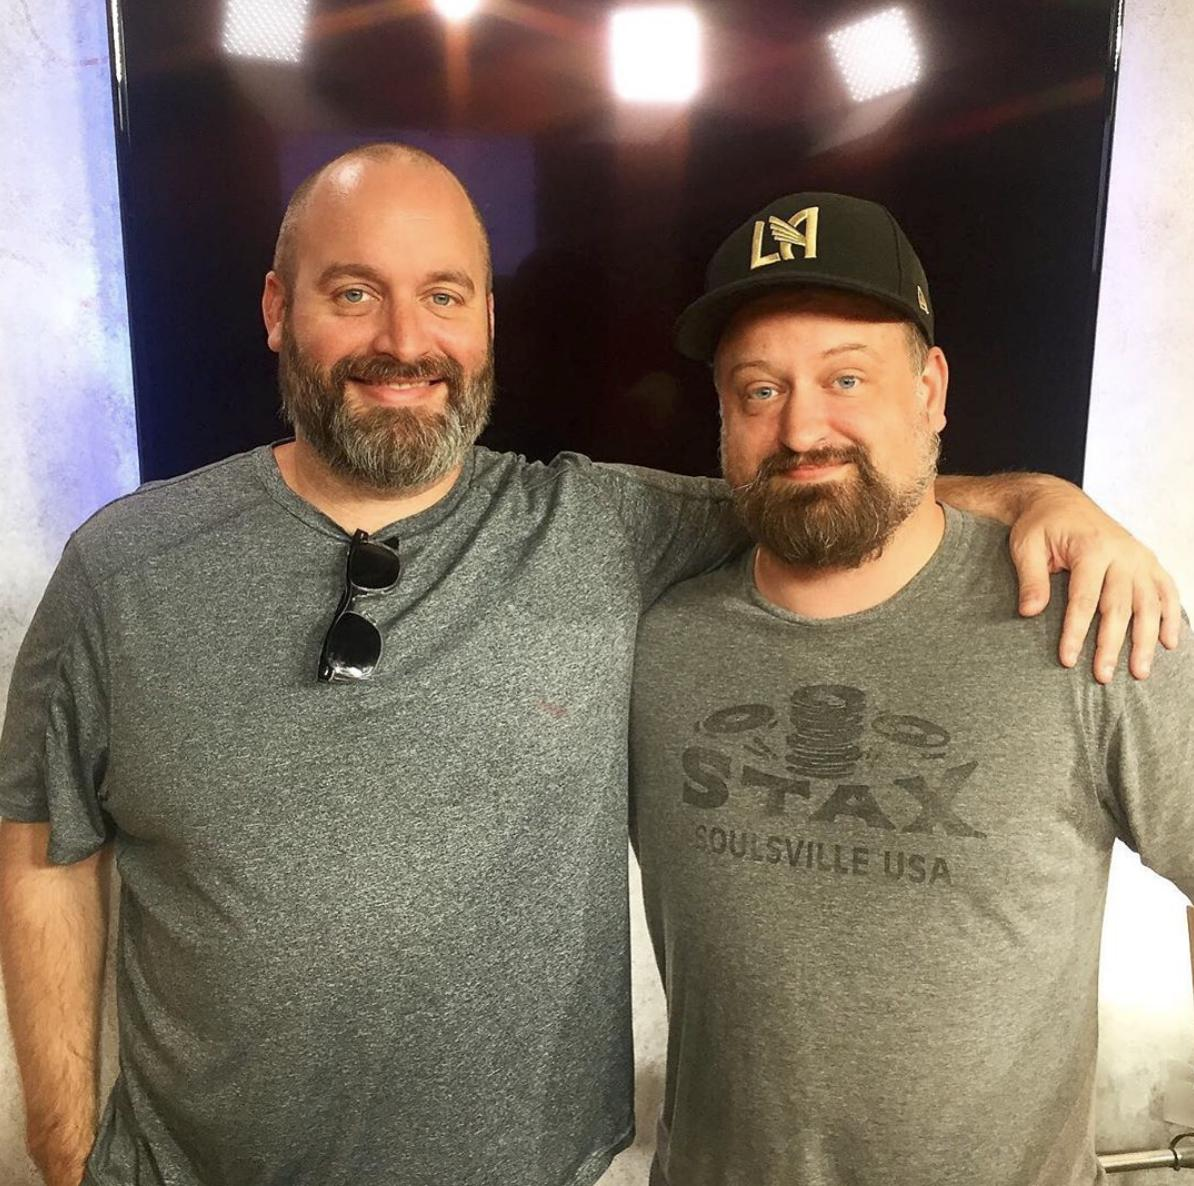 """I've had a lot of great guests on """"Hunk with Mike Bridenstine"""". But none have been quite as handsome as @tomsegura. Click the link.   https://podcasts.apple.com/us/podcast/ep-021-offensive-jokes-with-tom-segura/id1454900854?i=1000444341761…"""